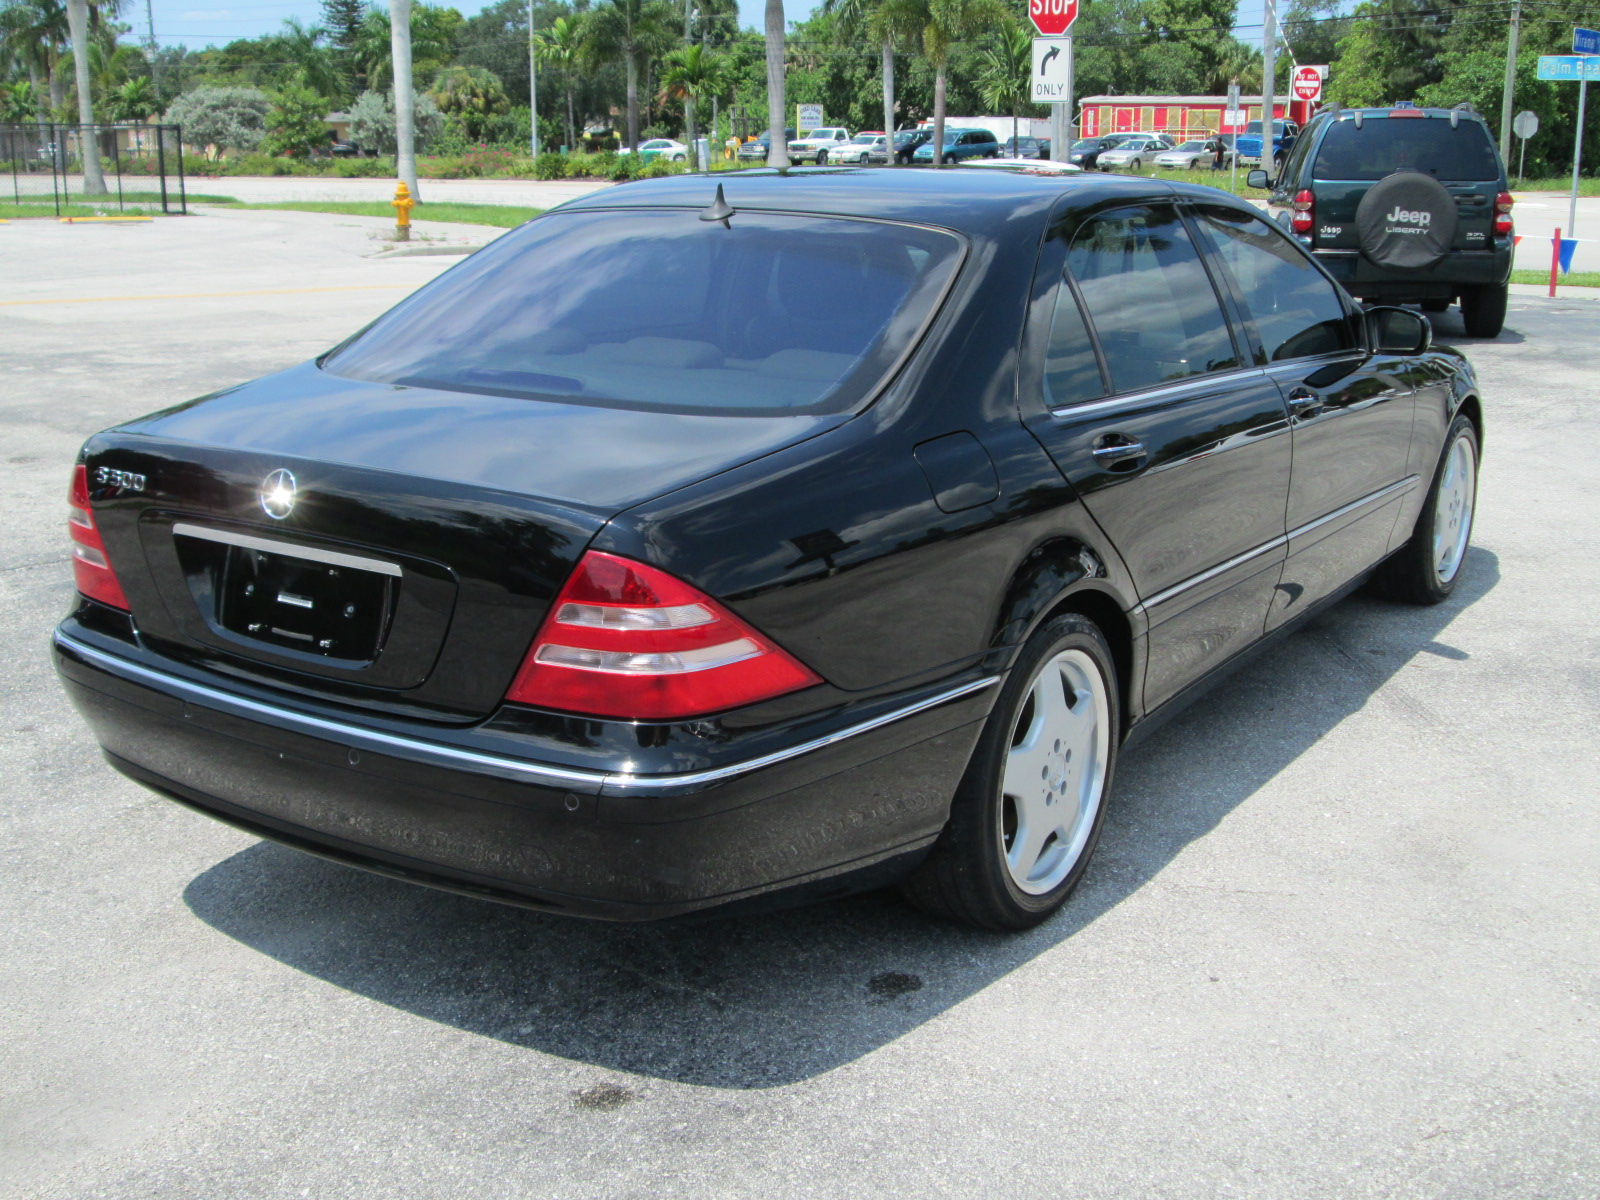 Picture of 2001 mercedes benz s class s55 amg exterior for 2001 mercedes benz s55 amg